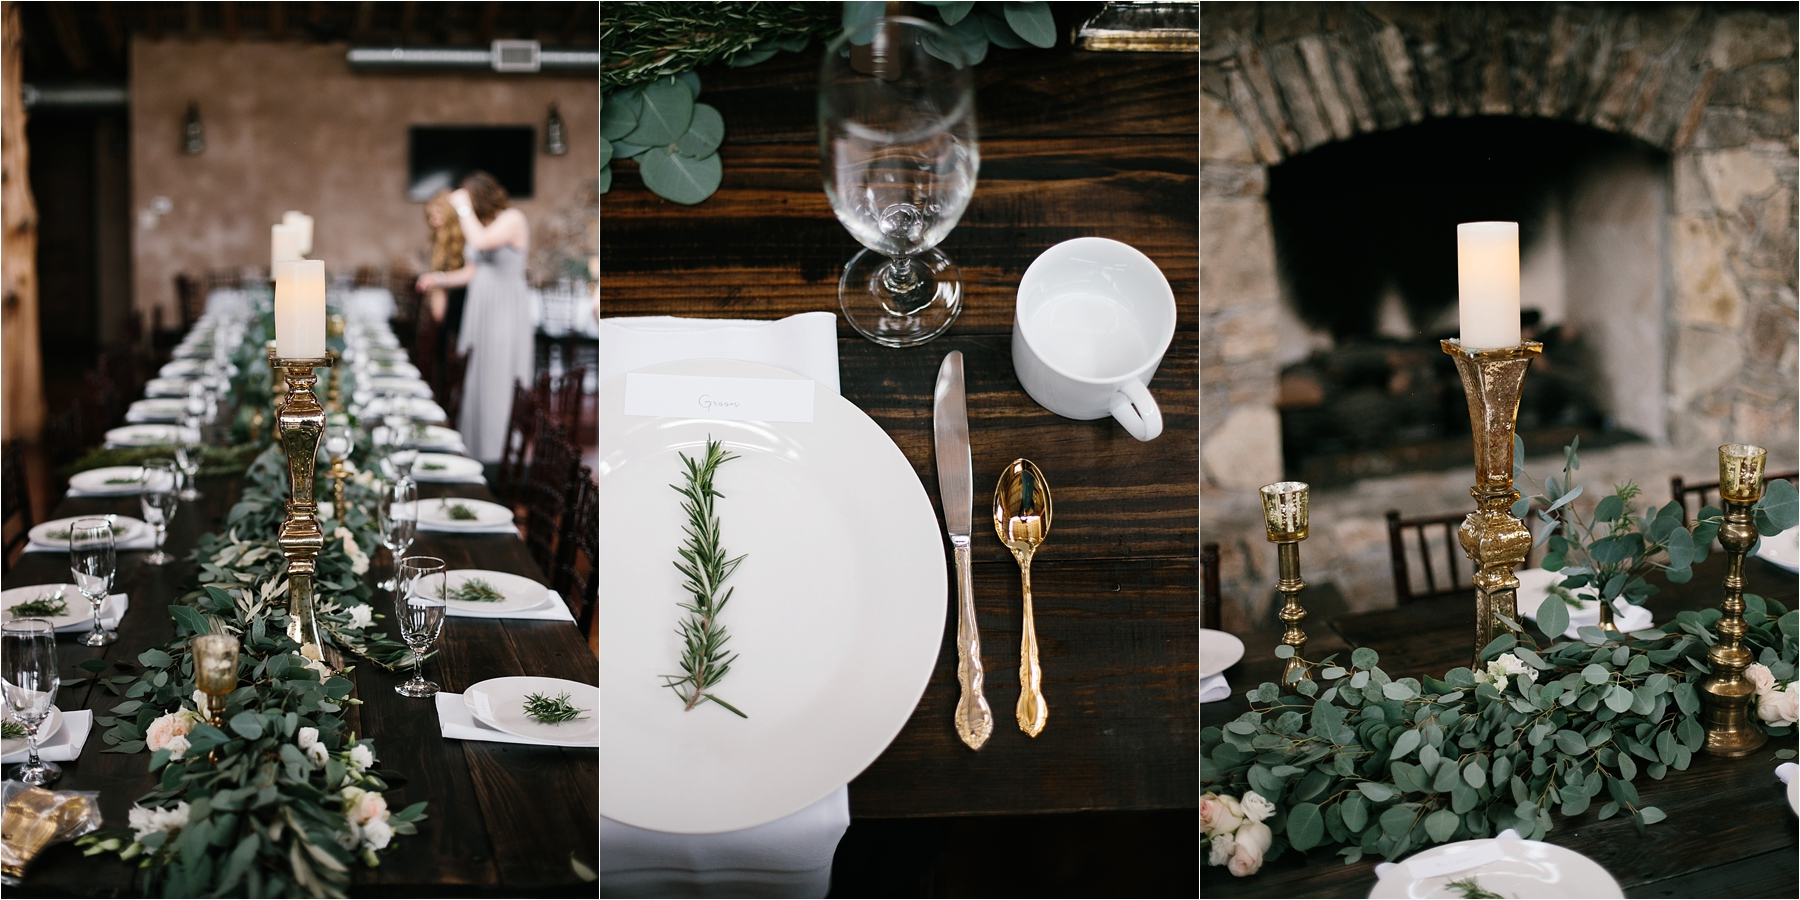 Lauren + Matt __ an intimate, emotional, blush pink, navy blue, and greenery toned wedding accents at the Brooks at Weatherford by North Texas Wedding Photographer Rachel Meagan Photography101